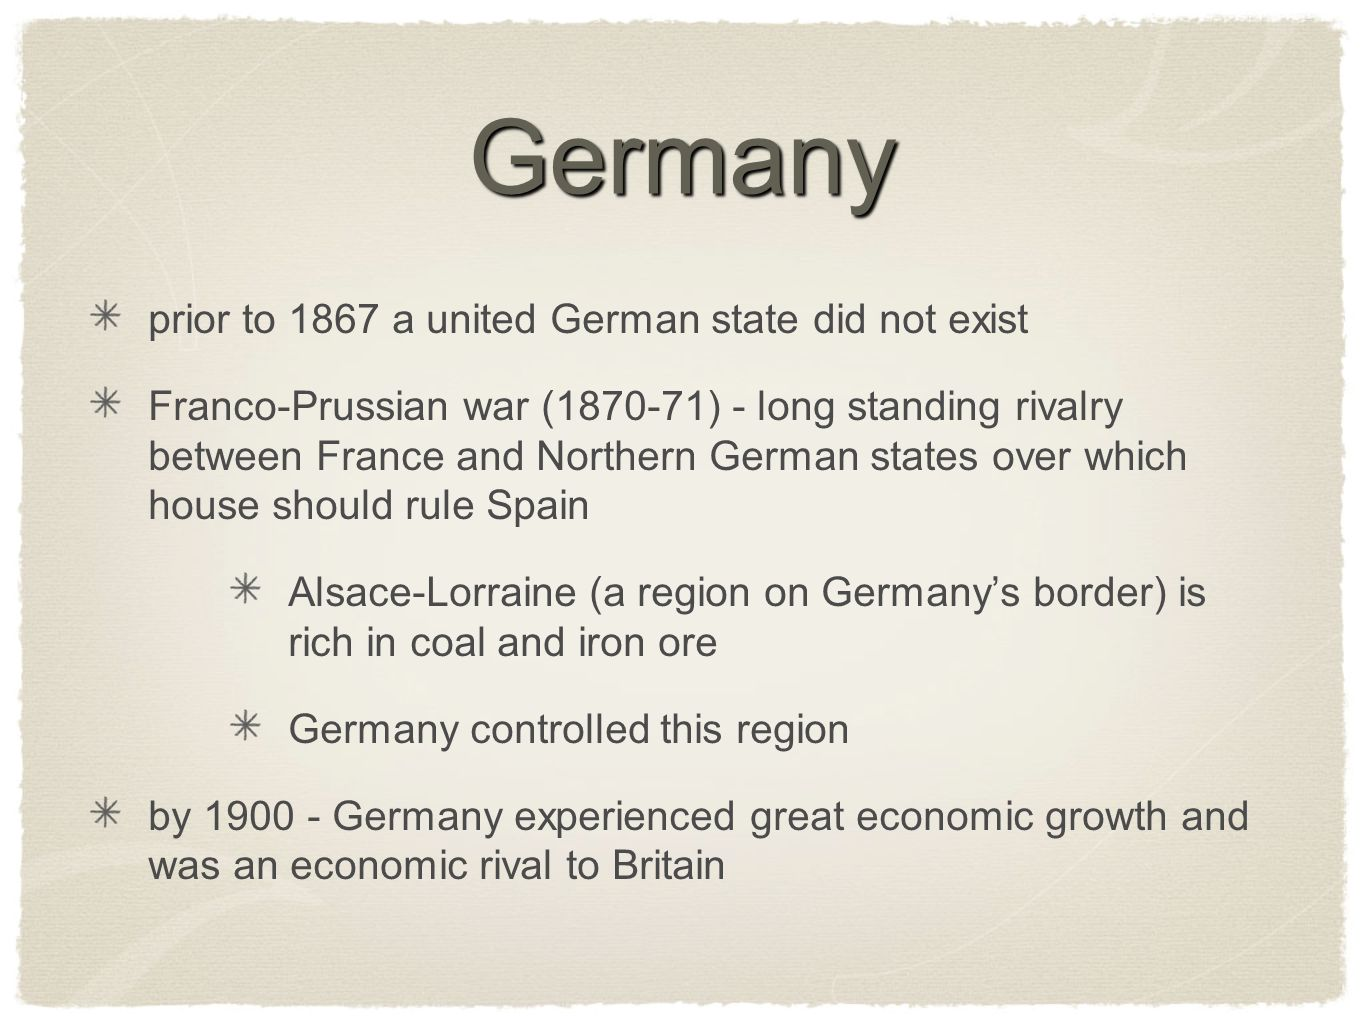 Germany prior to 1867 a united German state did not exist